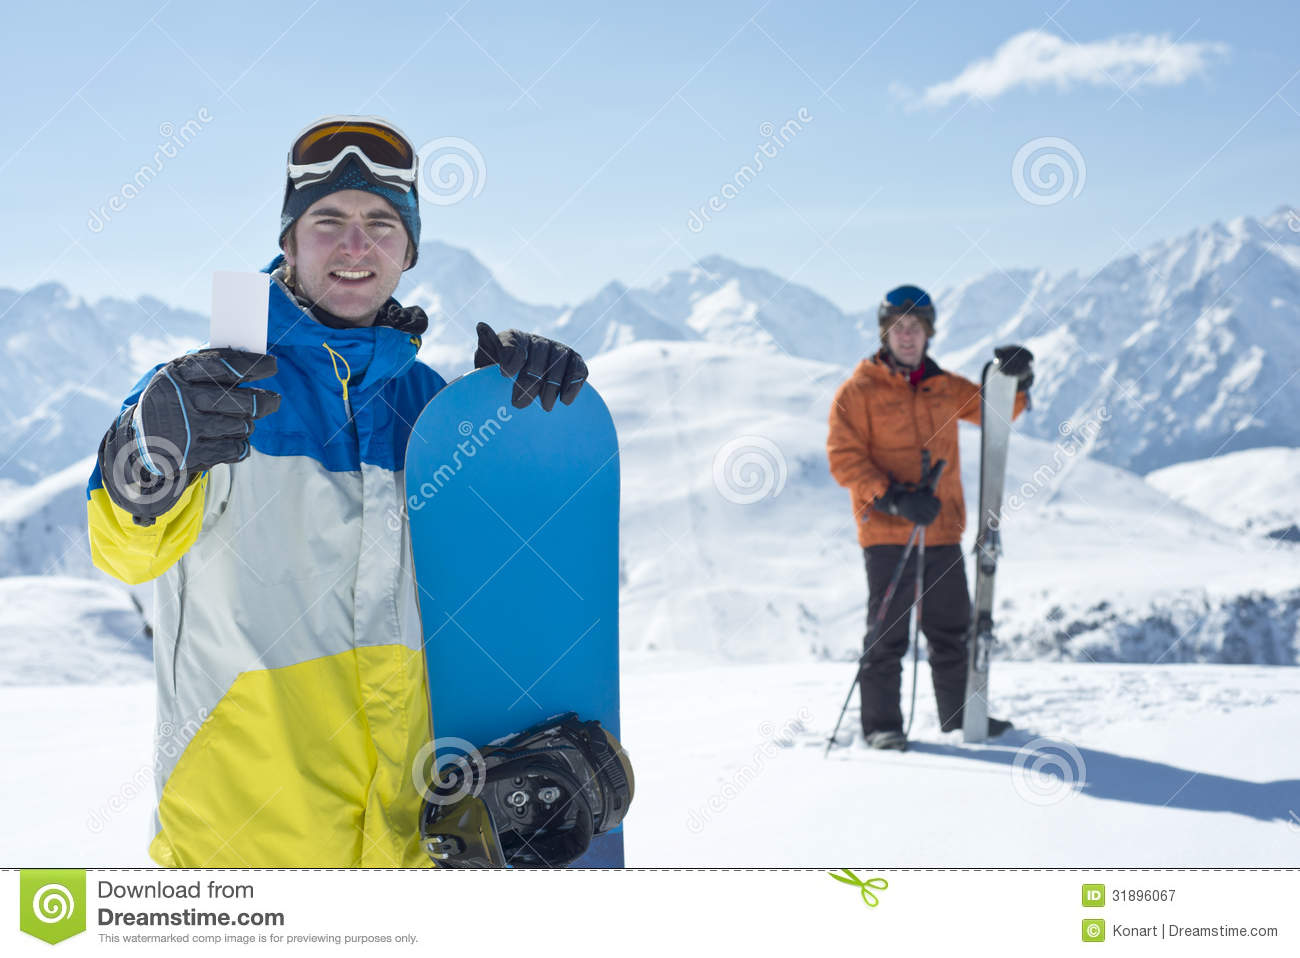 An overview of the concept of skiing as a sport activity